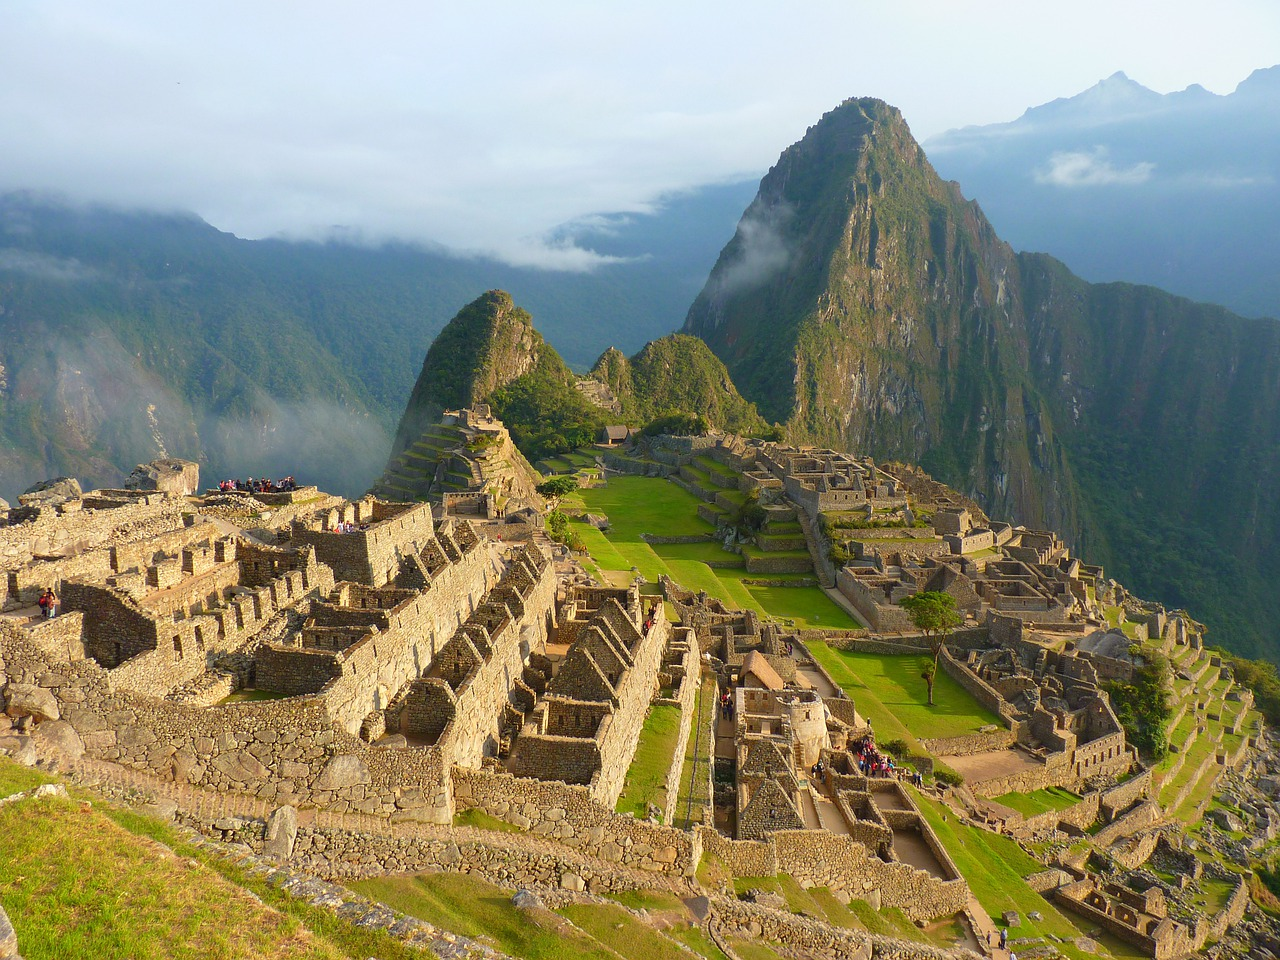 https://cdn.pixabay.com/photo/2012/04/26/22/48/machu-picchu-43387_1280.jpg